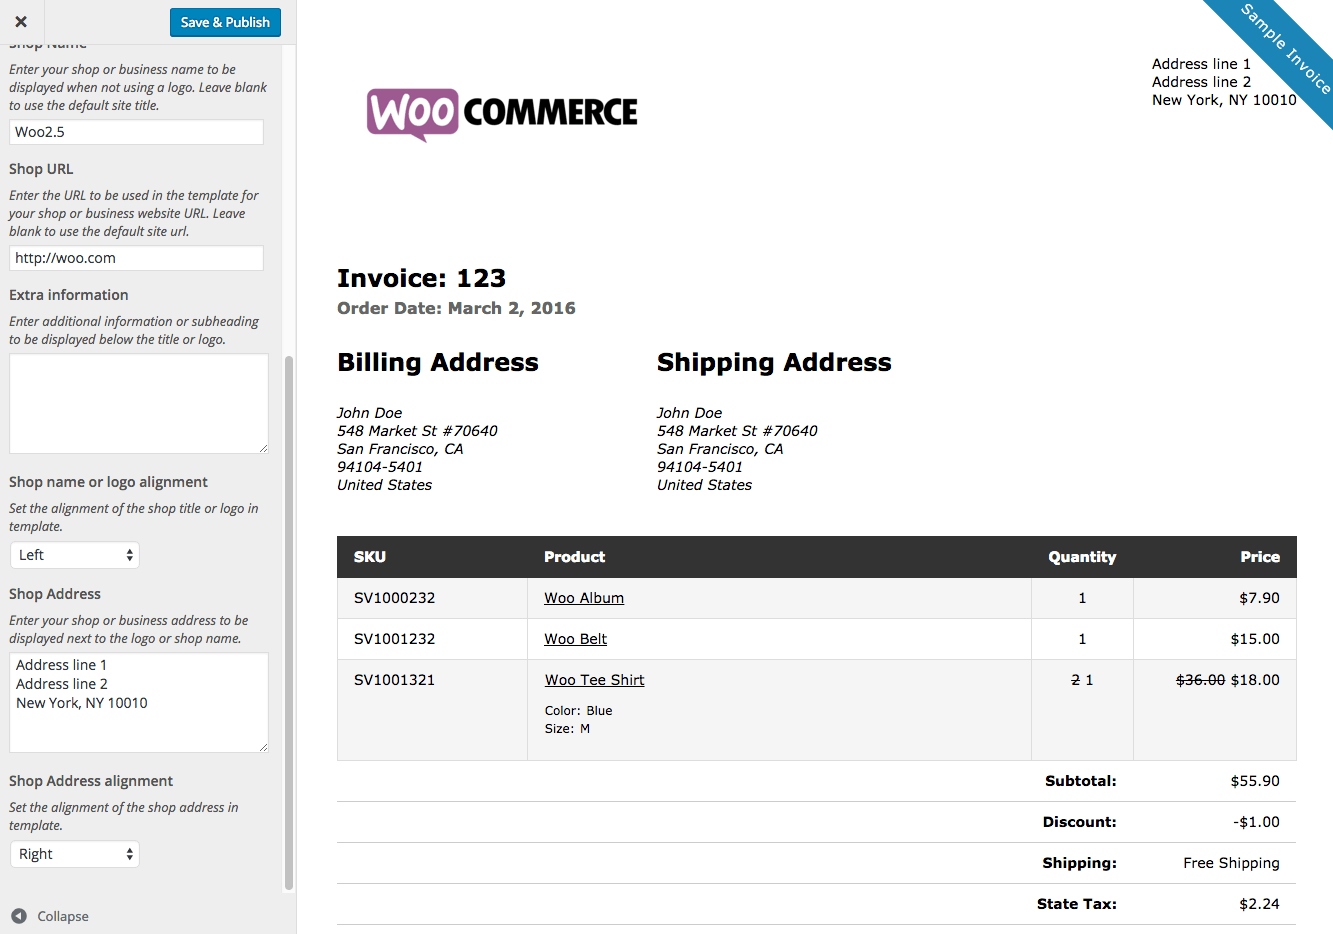 Hucareus  Unique Woocommerce Print Invoices Amp Packing Lists  Woocommerce Docs With Fascinating Woocommerce Print Invoices  Packing Lists Customizer With Enchanting Dhl Proforma Invoice Template Also What Are Invoice In Addition Gst Tax Invoice Sample And Tnt E Invoice As Well As Zoho Invoice Alternative Additionally Samples Of Invoices For Services From Docswoocommercecom With Hucareus  Fascinating Woocommerce Print Invoices Amp Packing Lists  Woocommerce Docs With Enchanting Woocommerce Print Invoices  Packing Lists Customizer And Unique Dhl Proforma Invoice Template Also What Are Invoice In Addition Gst Tax Invoice Sample From Docswoocommercecom